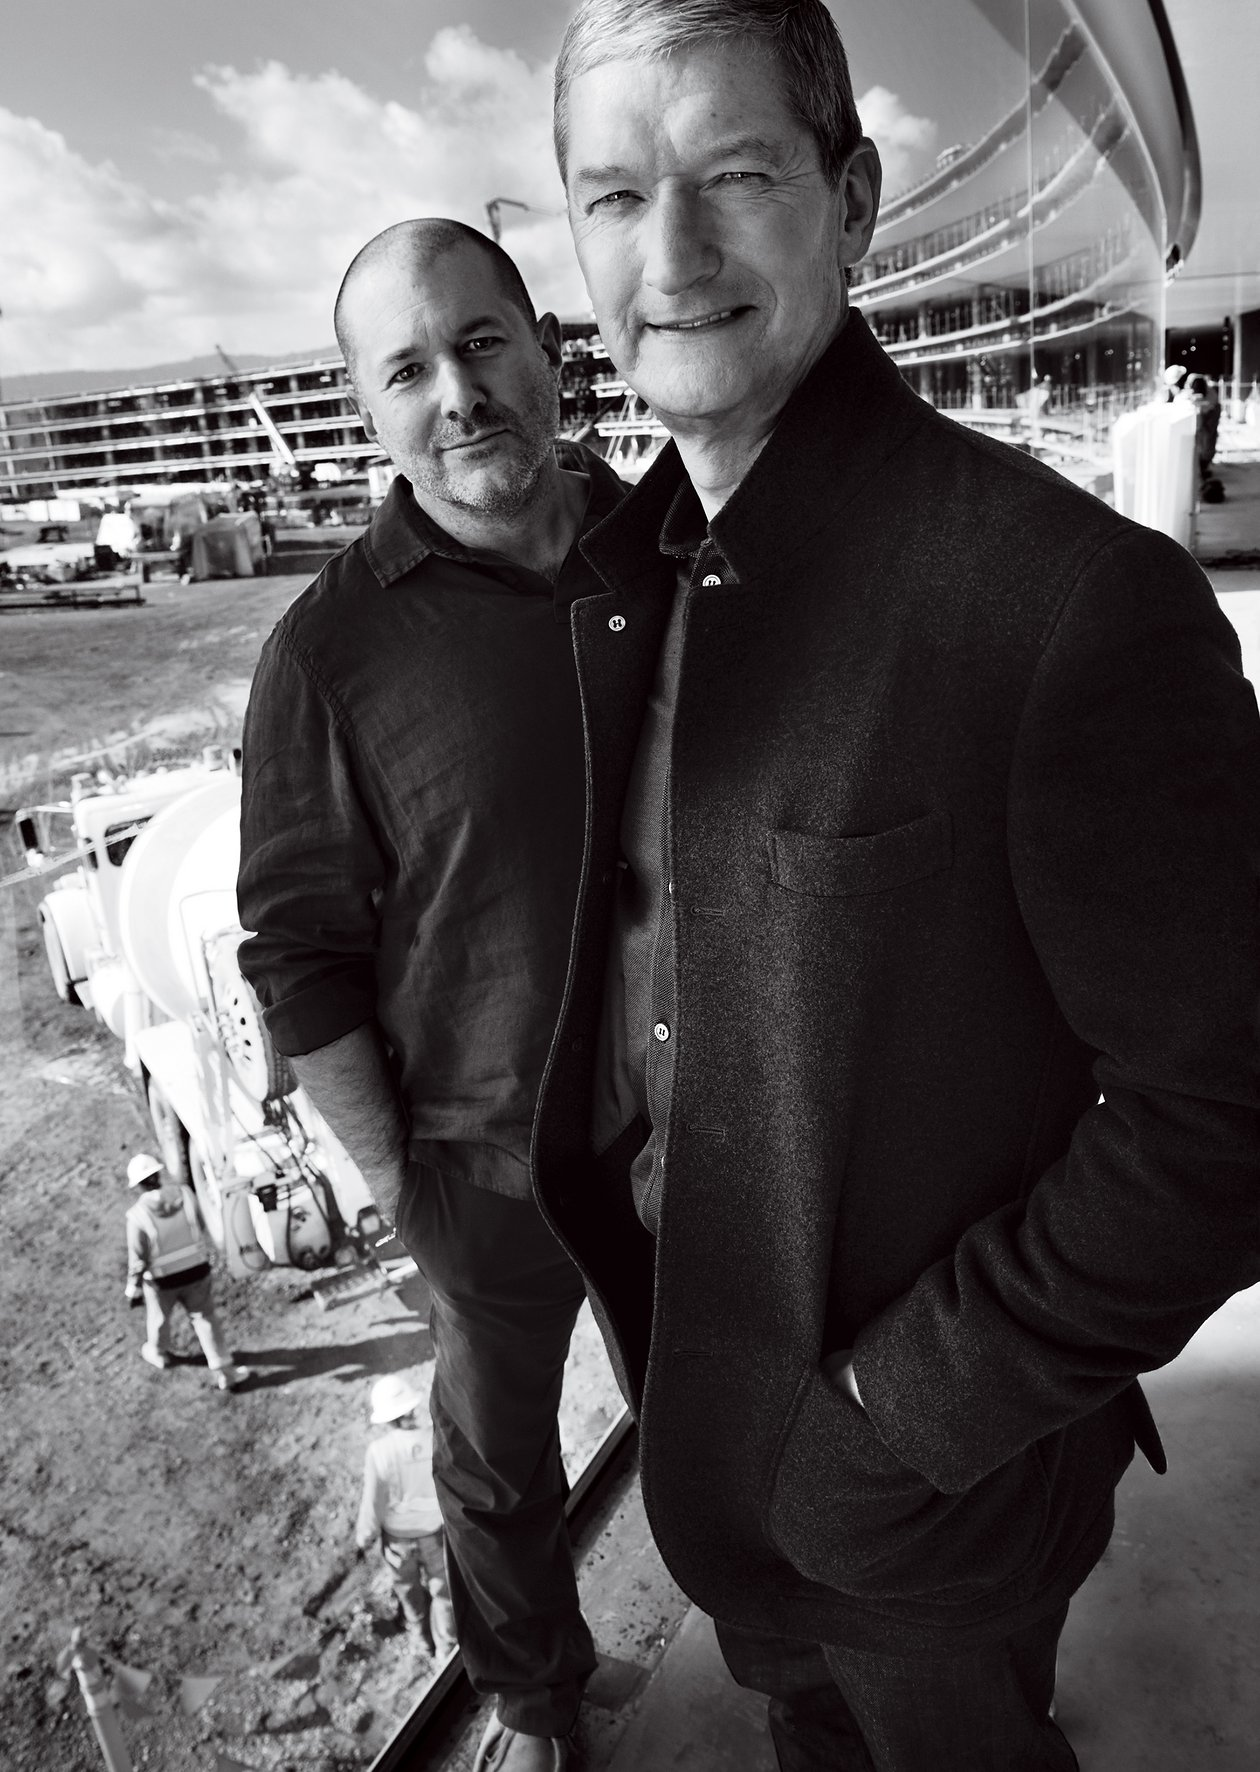 Jony Ive Tim Cook Vogue image 001